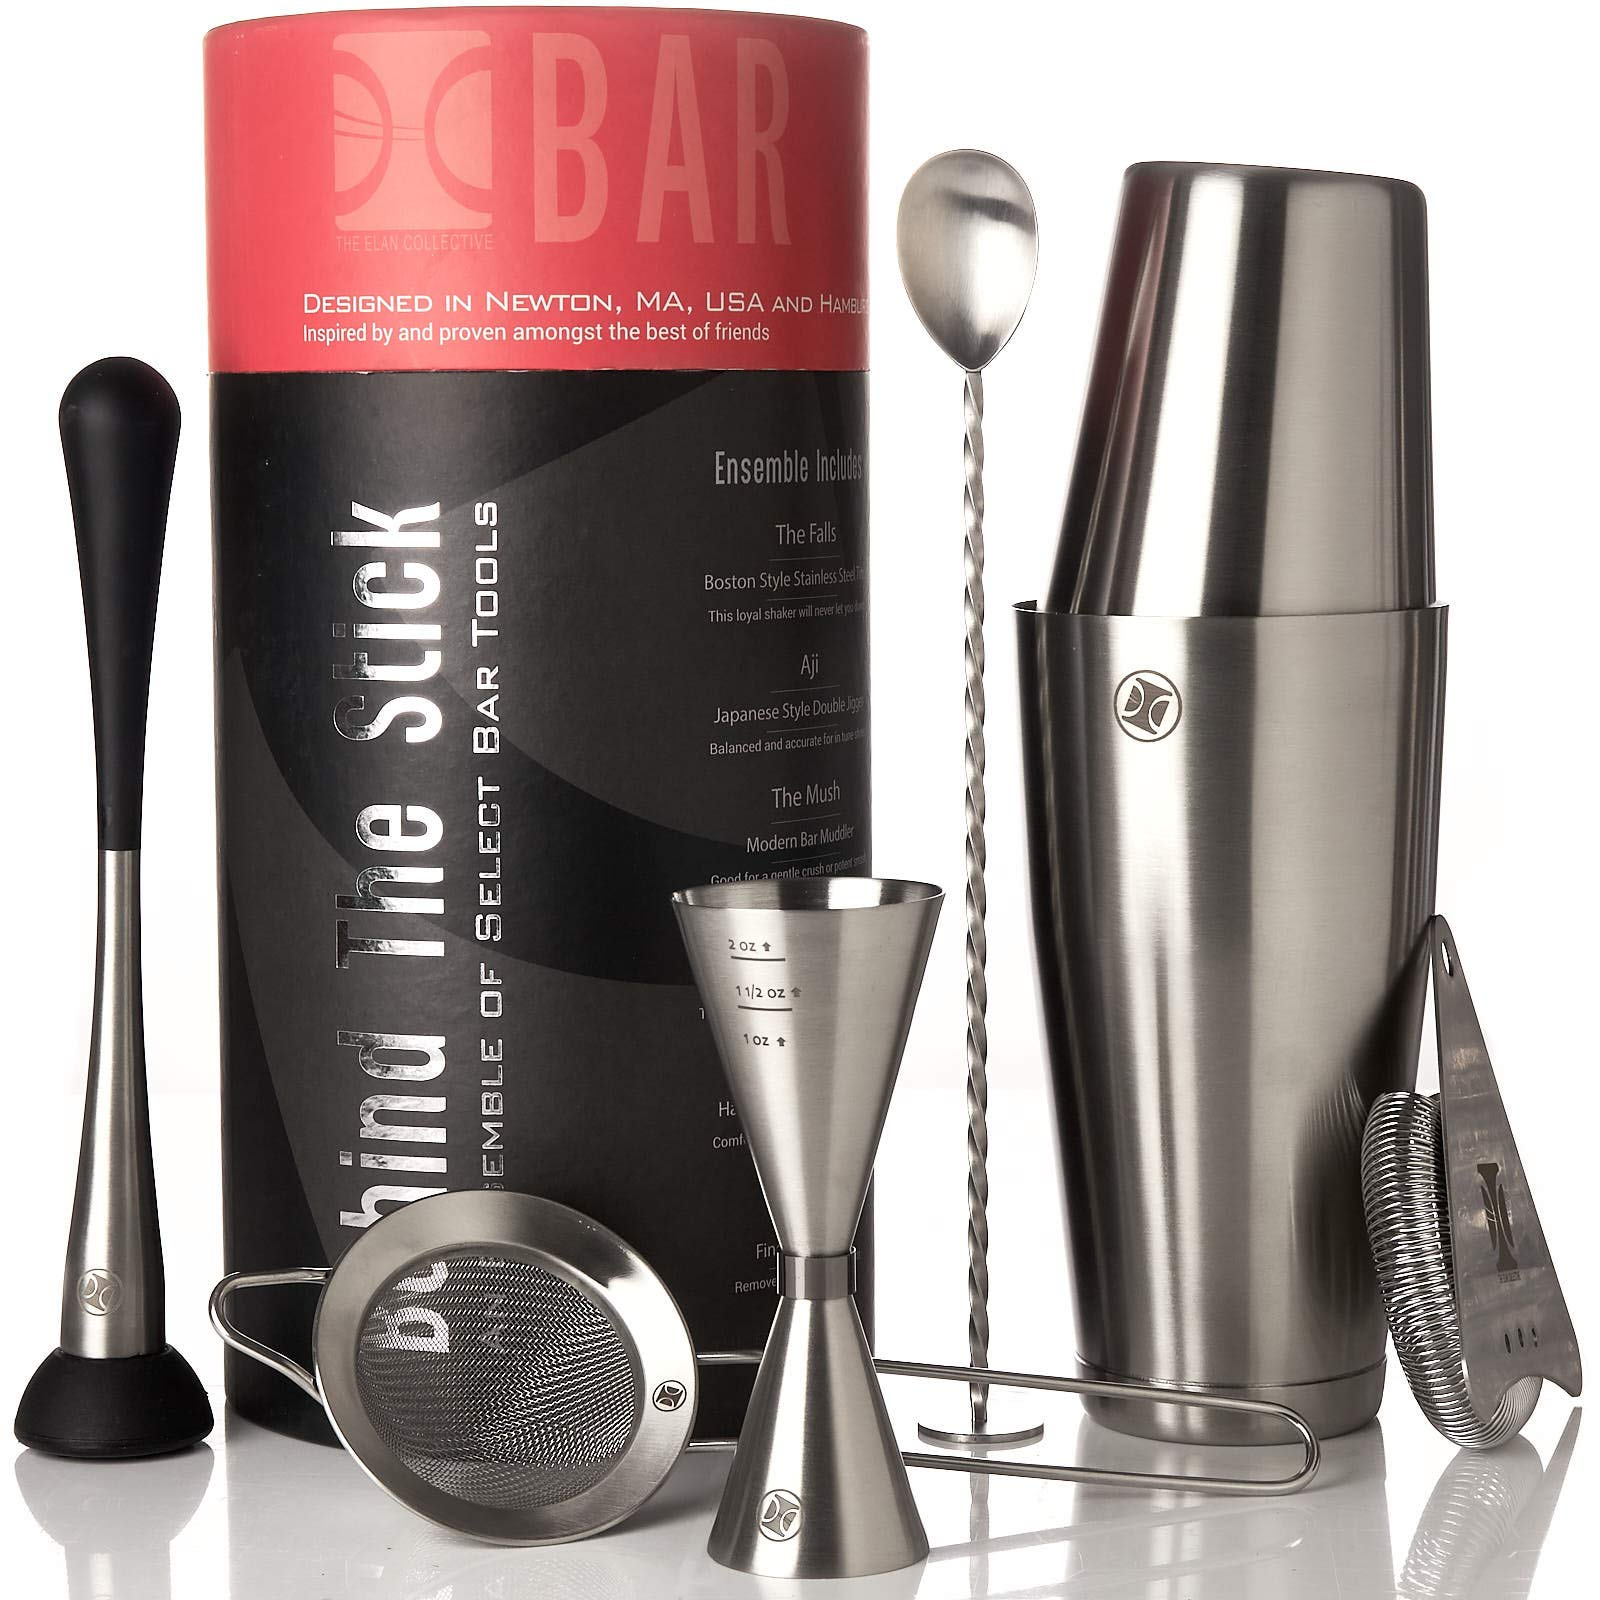 Boston Cocktail Shaker Set I Bar tools, 7 Piece Barware Kit - 2 Piece Boston Shaker, Jigger, Bar Spoon, Hawthorne & Citrus Strainers, Muddler in Brushed Stainless Steel by The Elan Collective